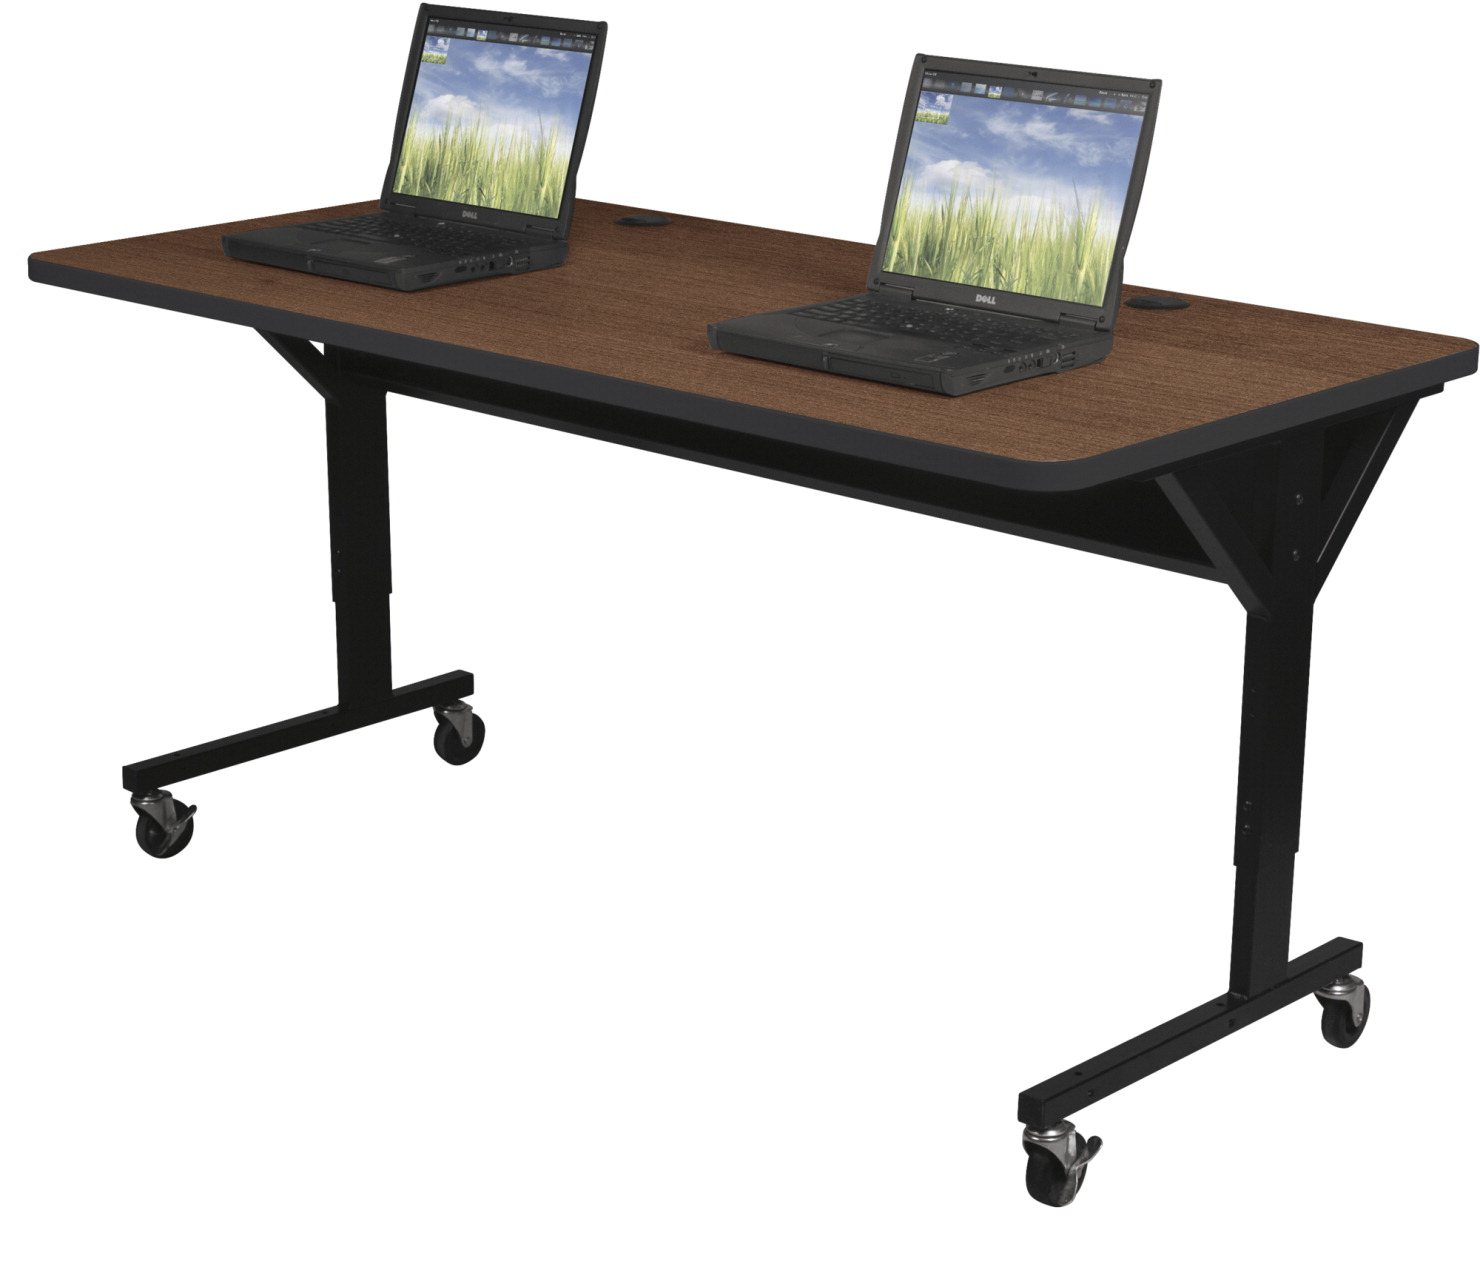 Classroom Select Y Leg Computer Table 60 X 30 X 25 1 2 To 33 1 2 Inches Various Options